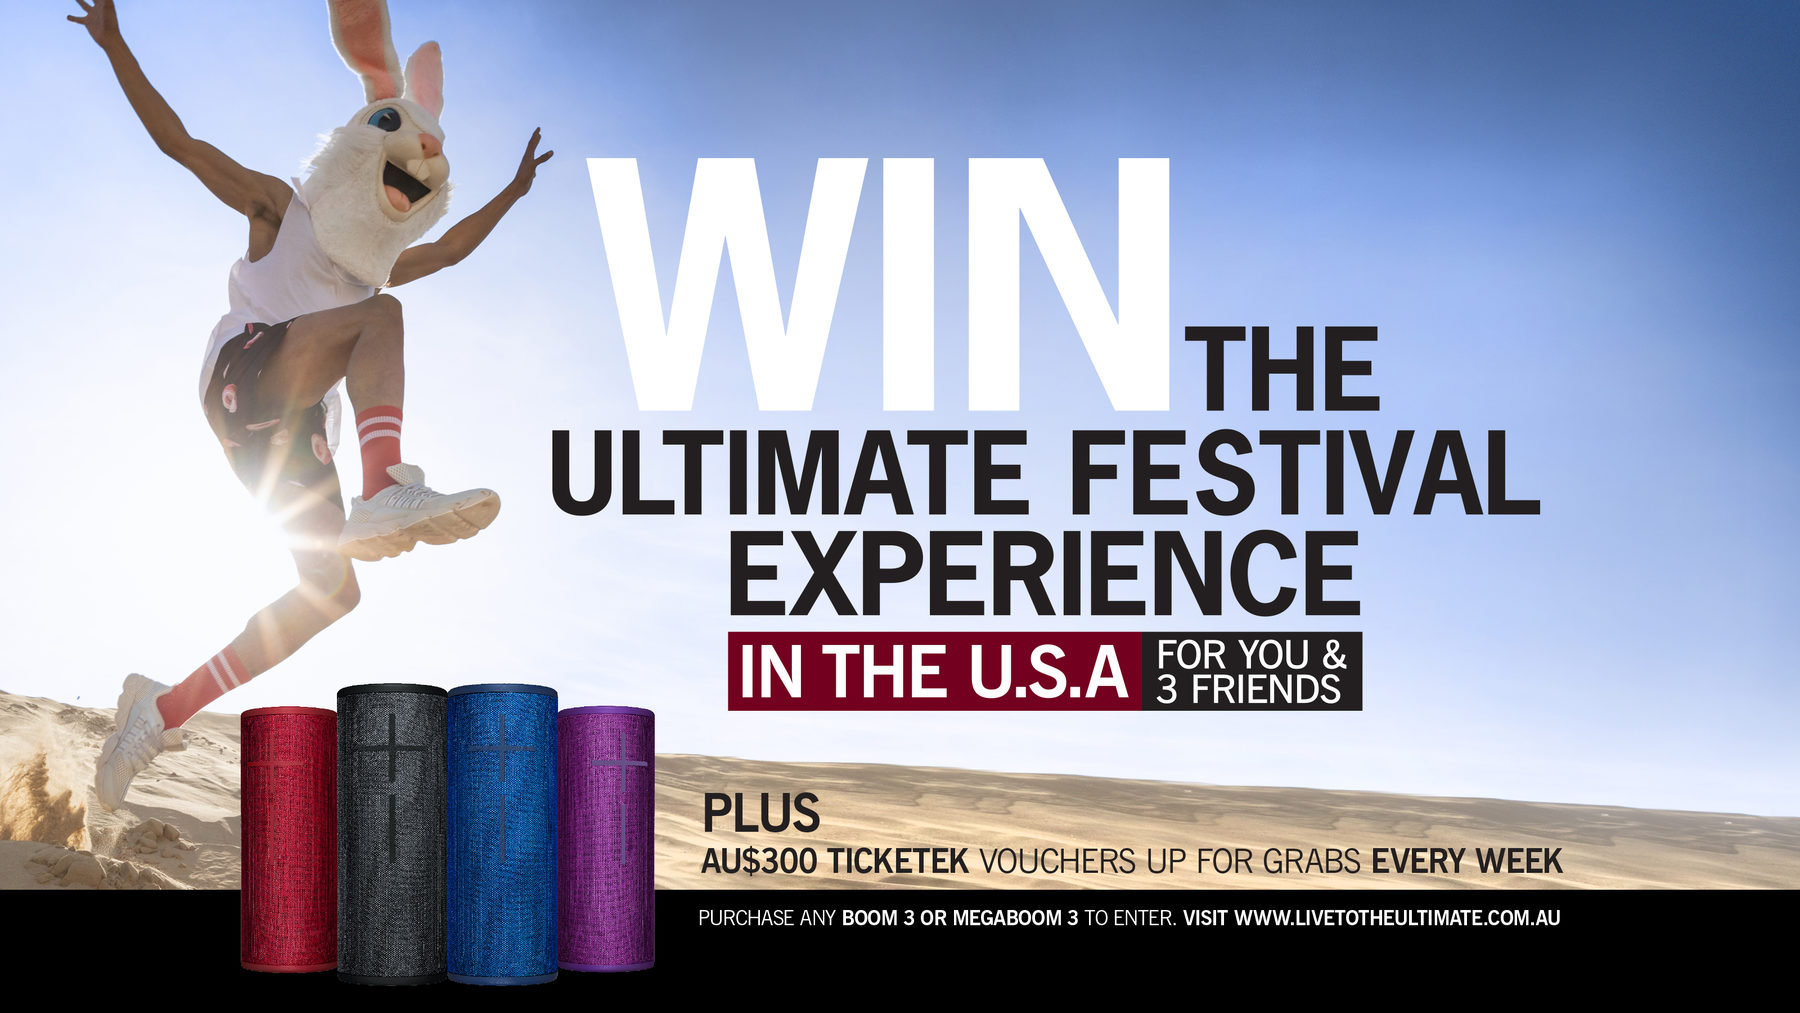 Win the ultimate festival experience in the U.S.A. for you & 3 friends